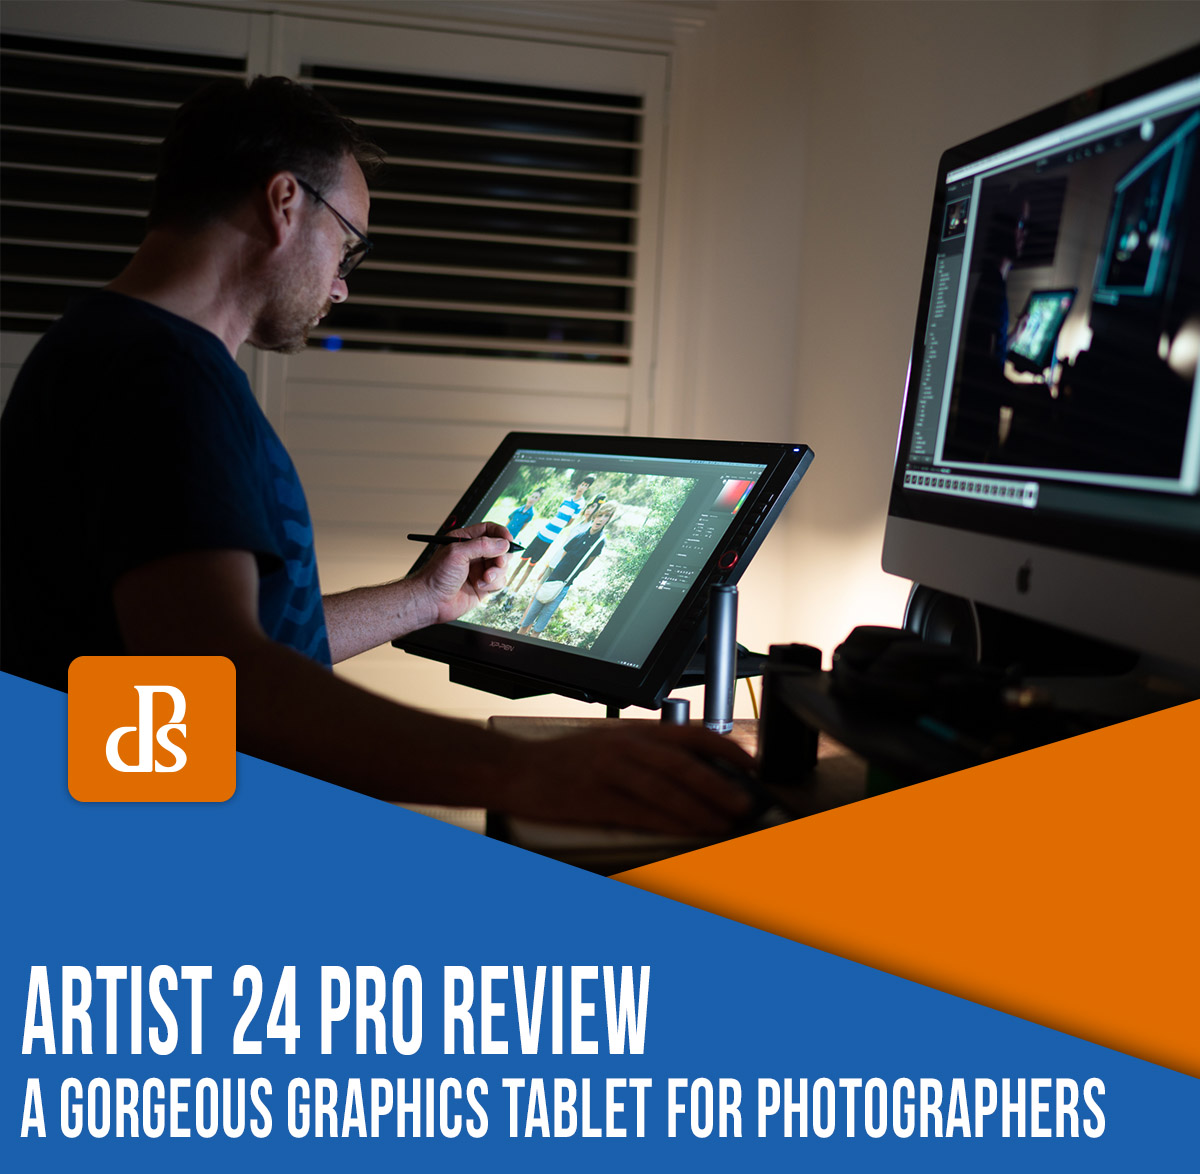 XP-Pen Artist 24 Pro graphics tablet review